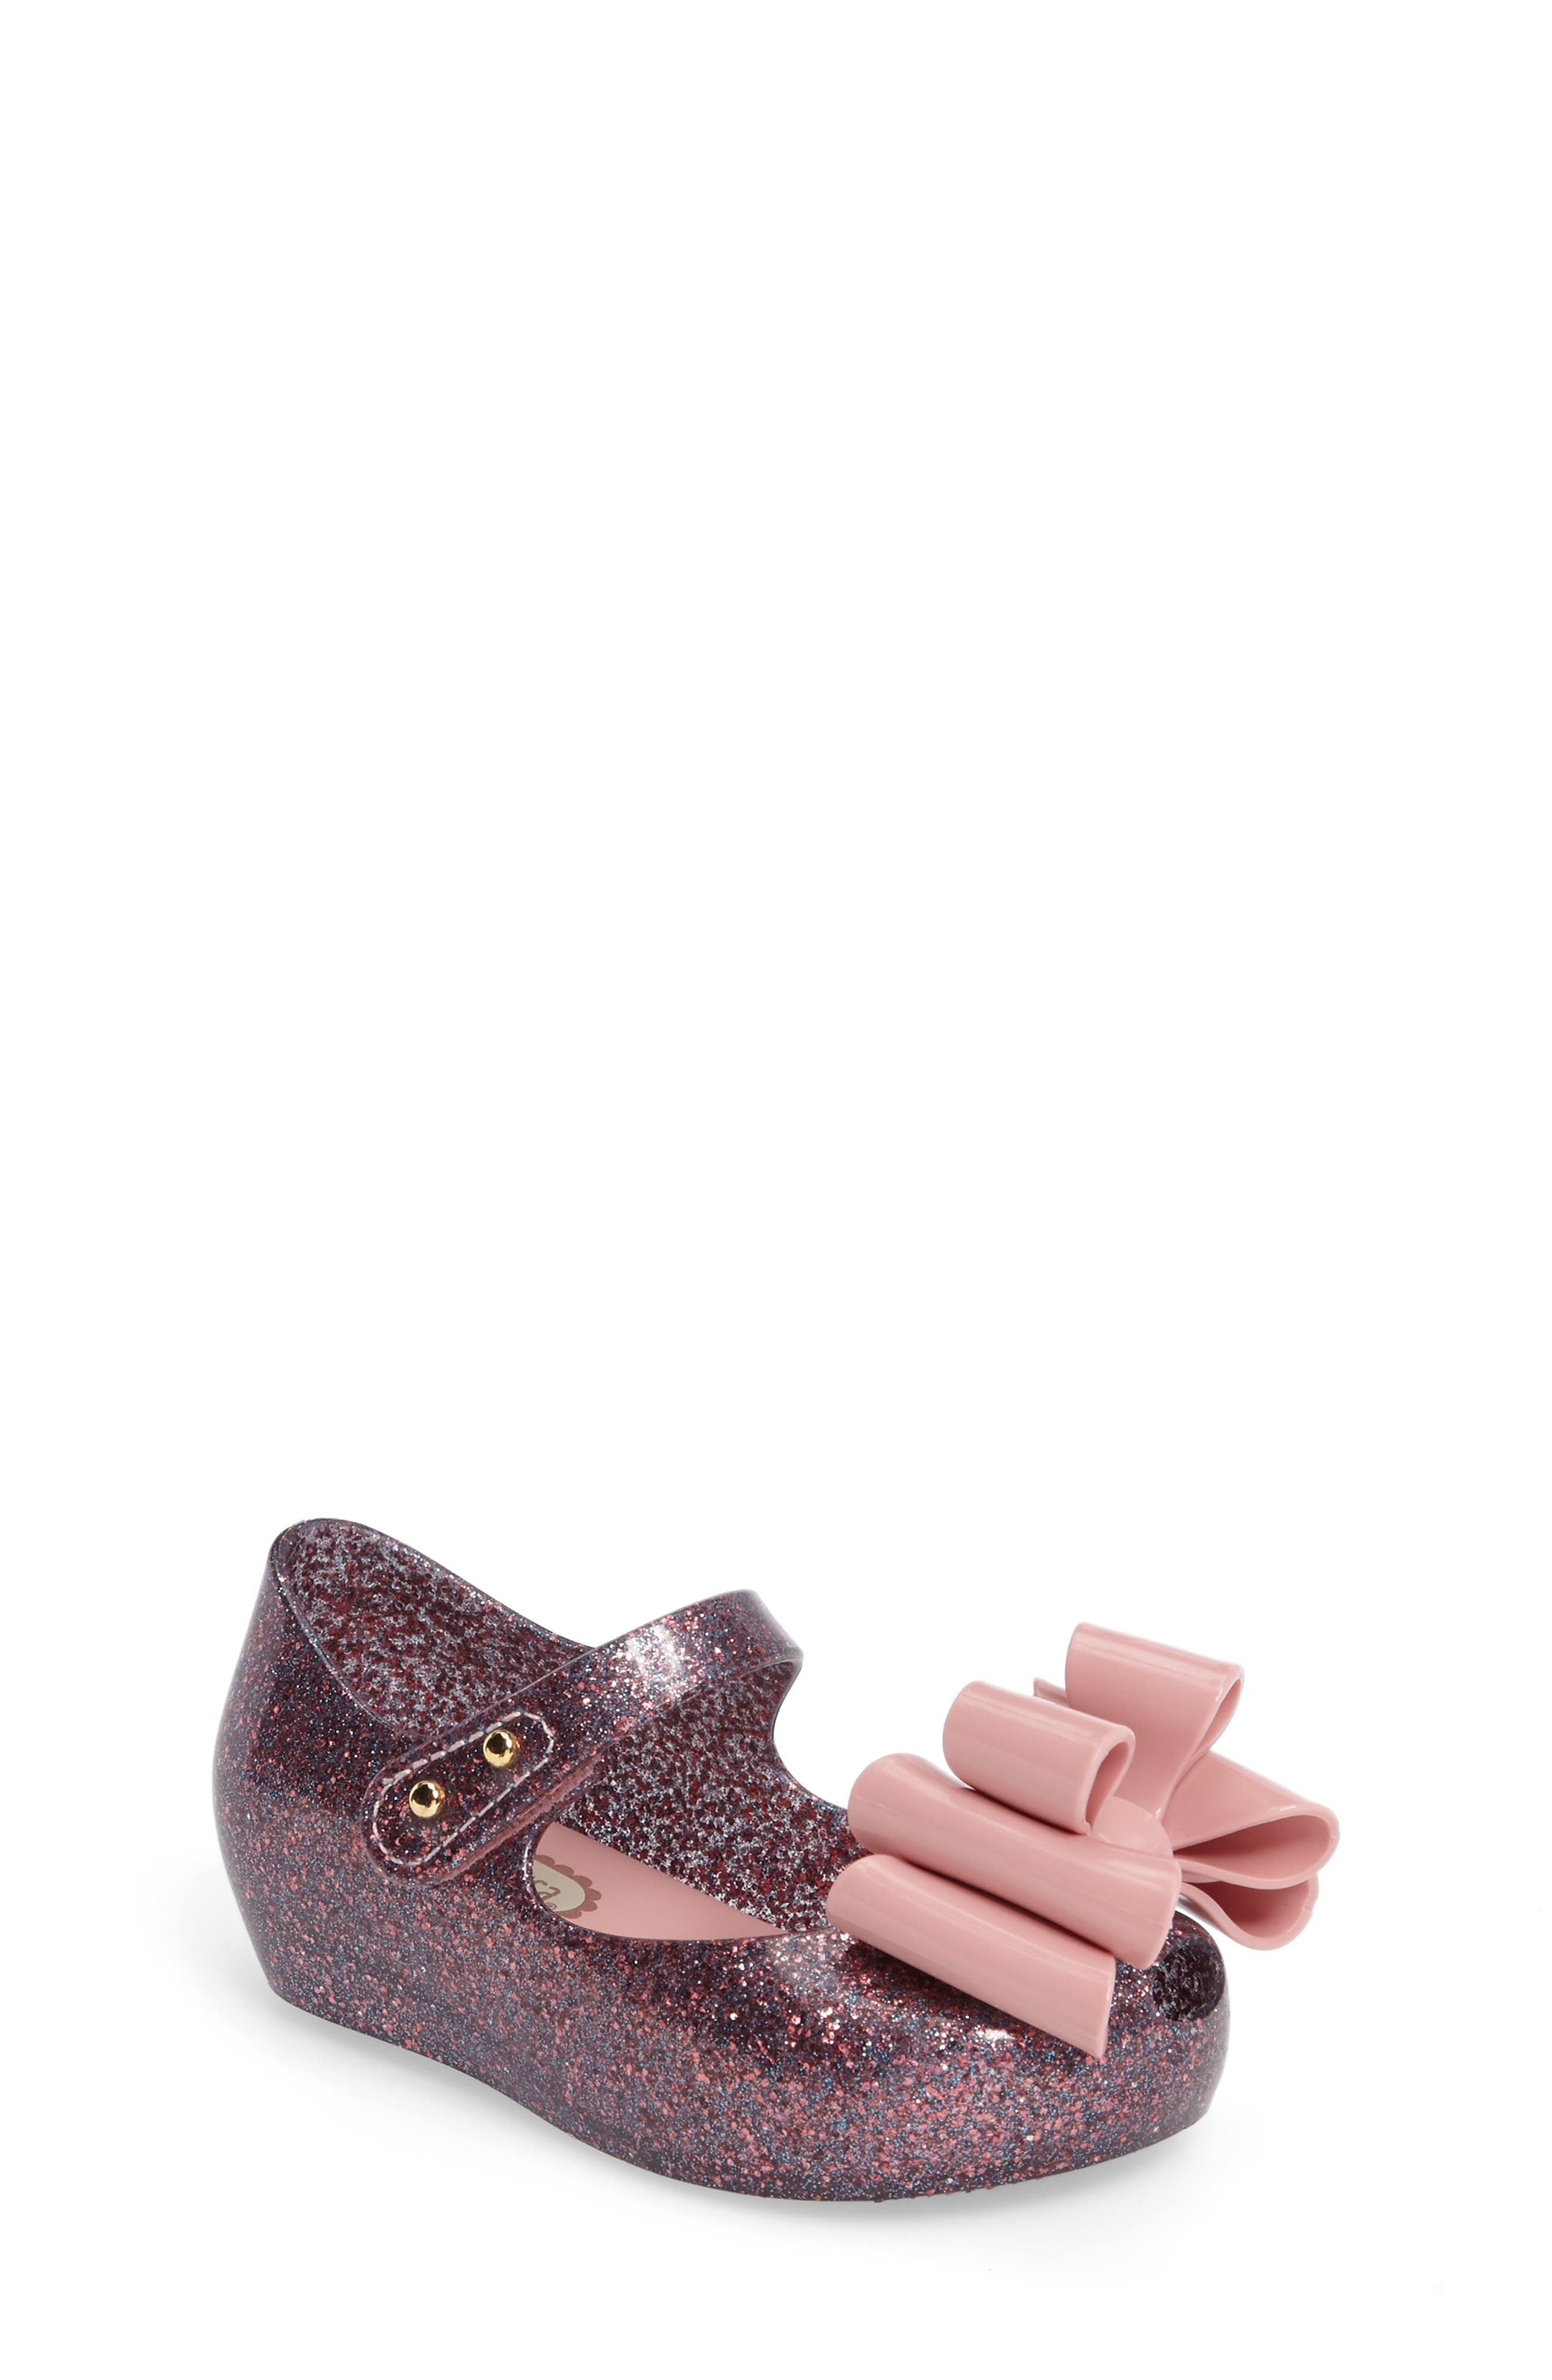 Mini Melissa Ultragirl Sweet III Mary Jane Flat (Walker & Toddler)